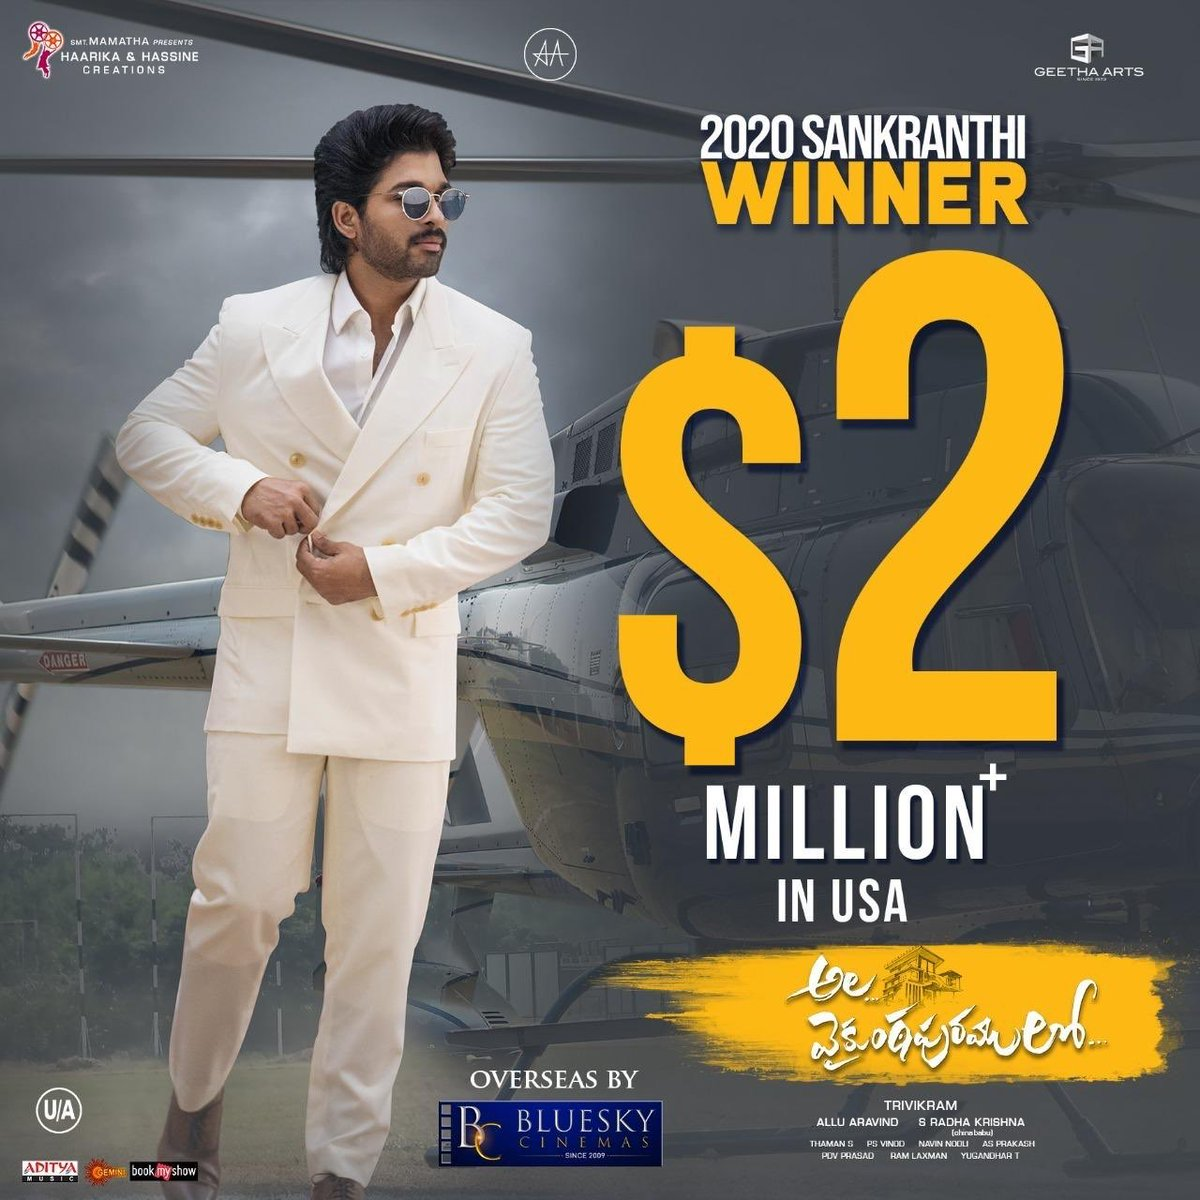 #AlaVaikunthapurramuloo had a Good Friday and all set to have a great weekend in USA . Pre sales for Saturday from 10 AM shows onwards looking very good. Expecting the film to touch $2.5M by end of Saturday. <br>http://pic.twitter.com/zZv0oE68bV